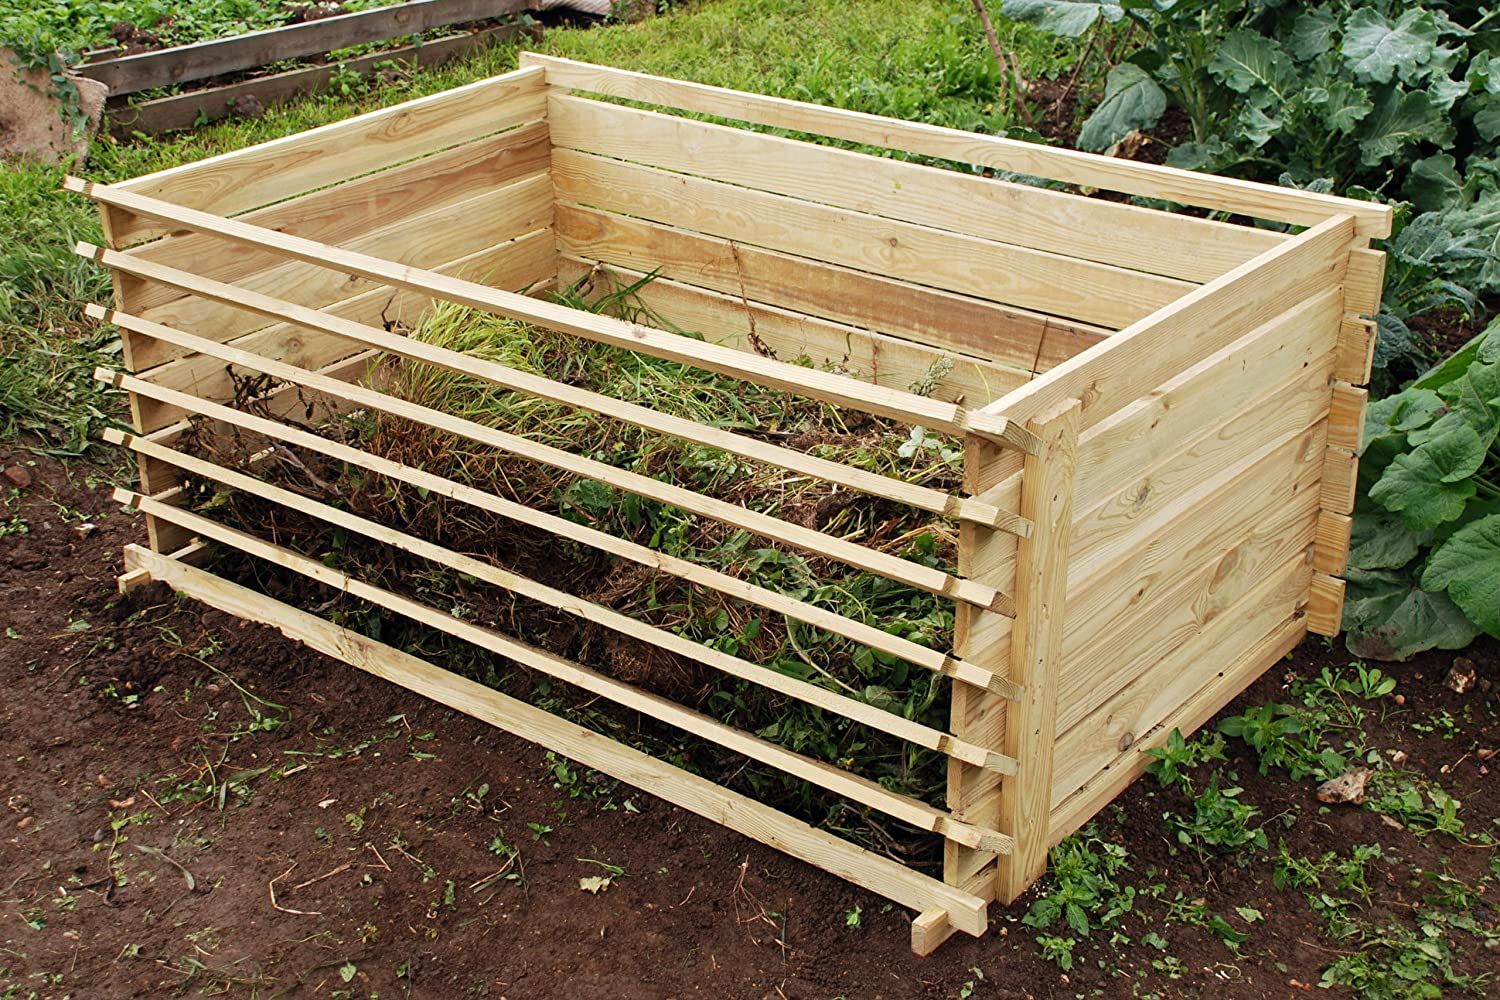 easyload wooden compost bin extra large 897 litres amazoncouk garden u0026 outdoors